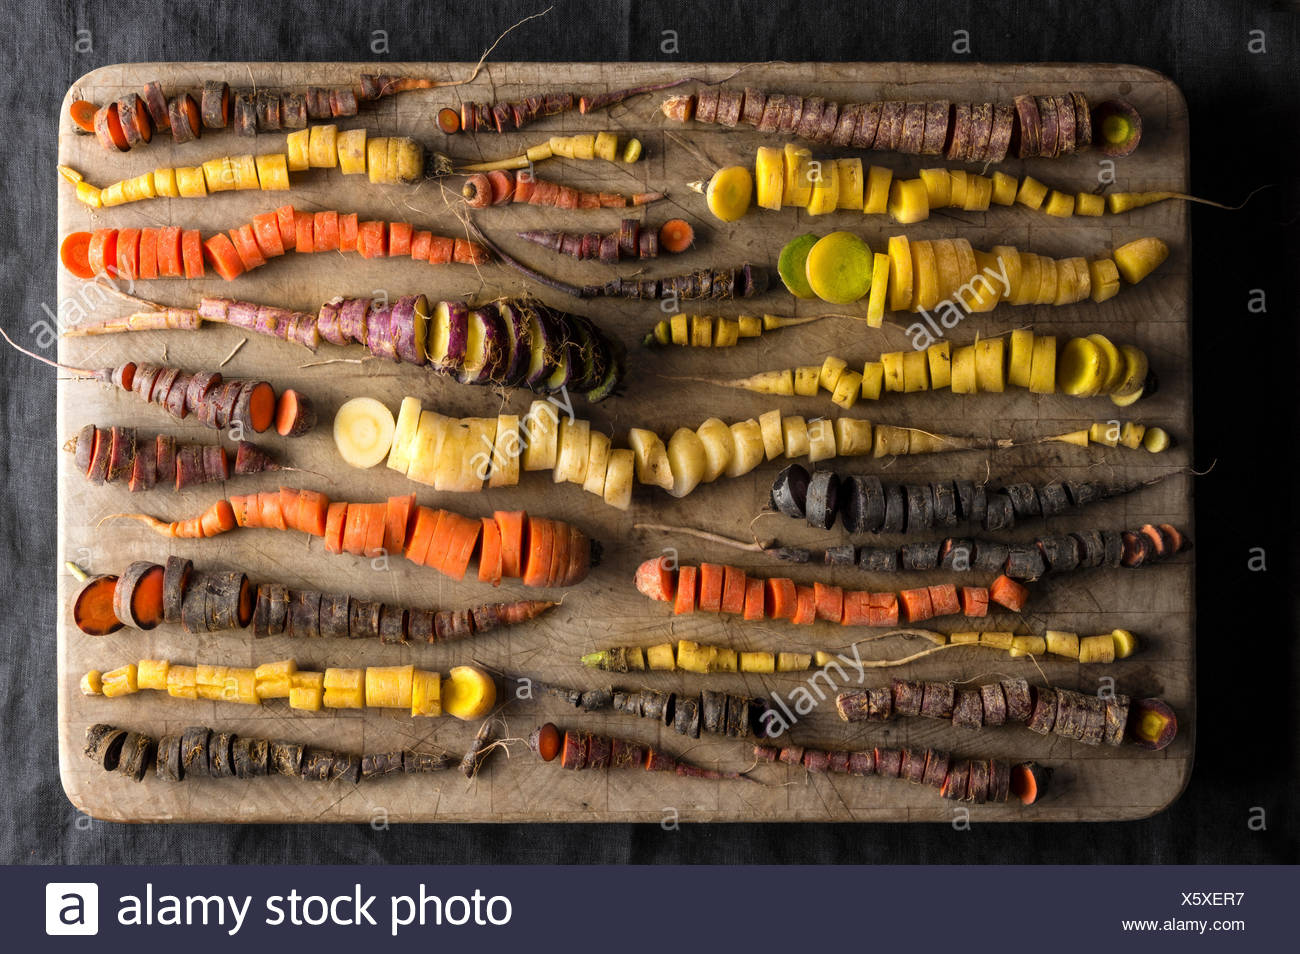 An array of rainbow carrots in many shapes and colors, all chopped finely on a worn wood chopping block. - Stock Image